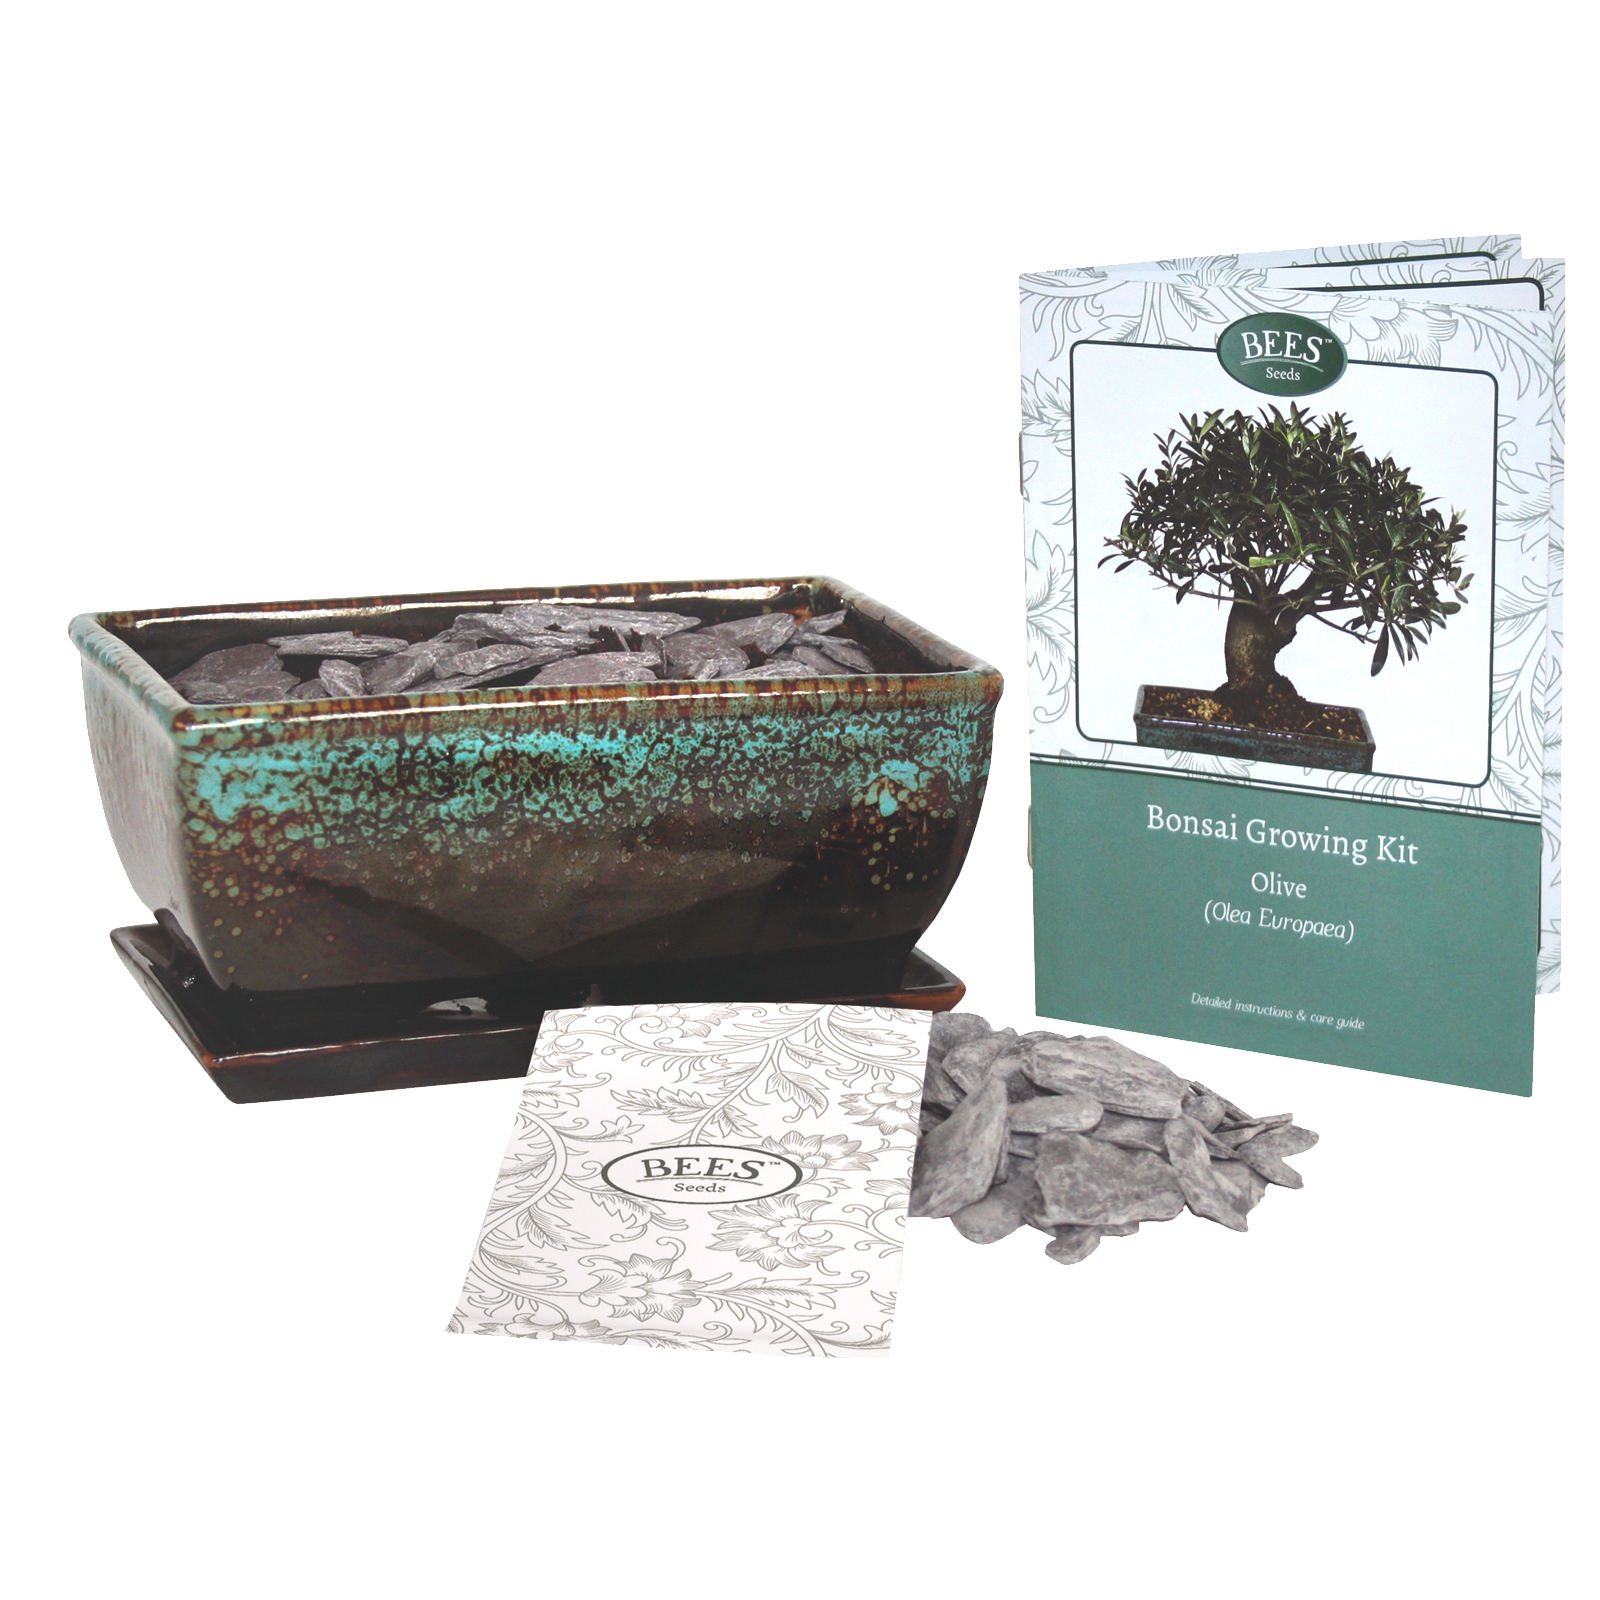 BEE FRIENDS BONSAI GROWING KIT OLIVE